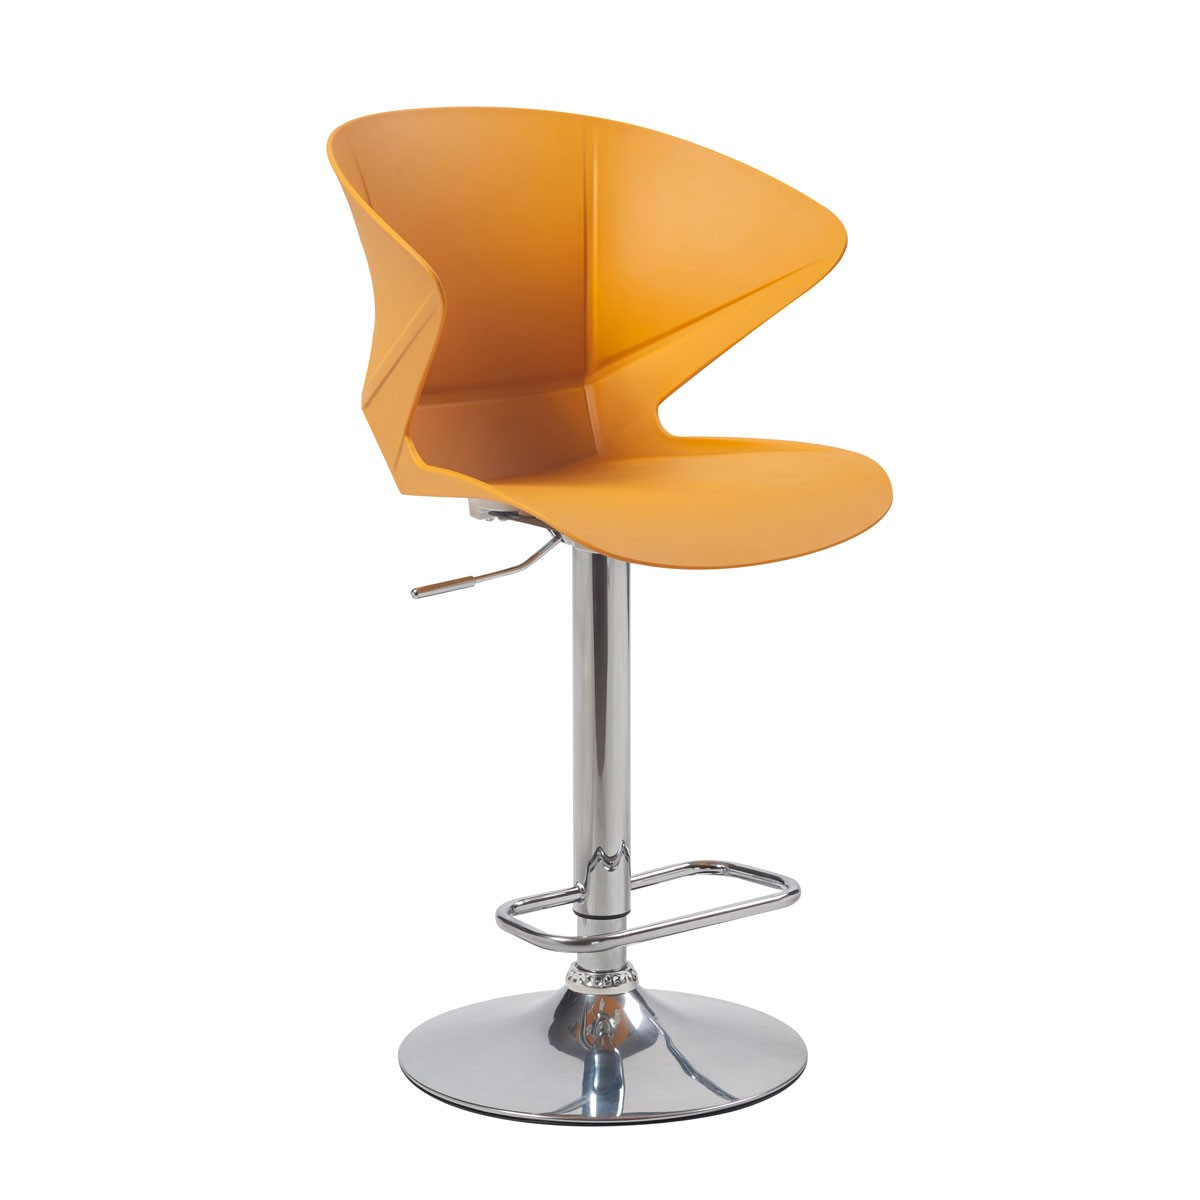 Yellow Adjustable Height Swivel Bar Stool with Round Base - Set of 2 (YMG-9802-1)